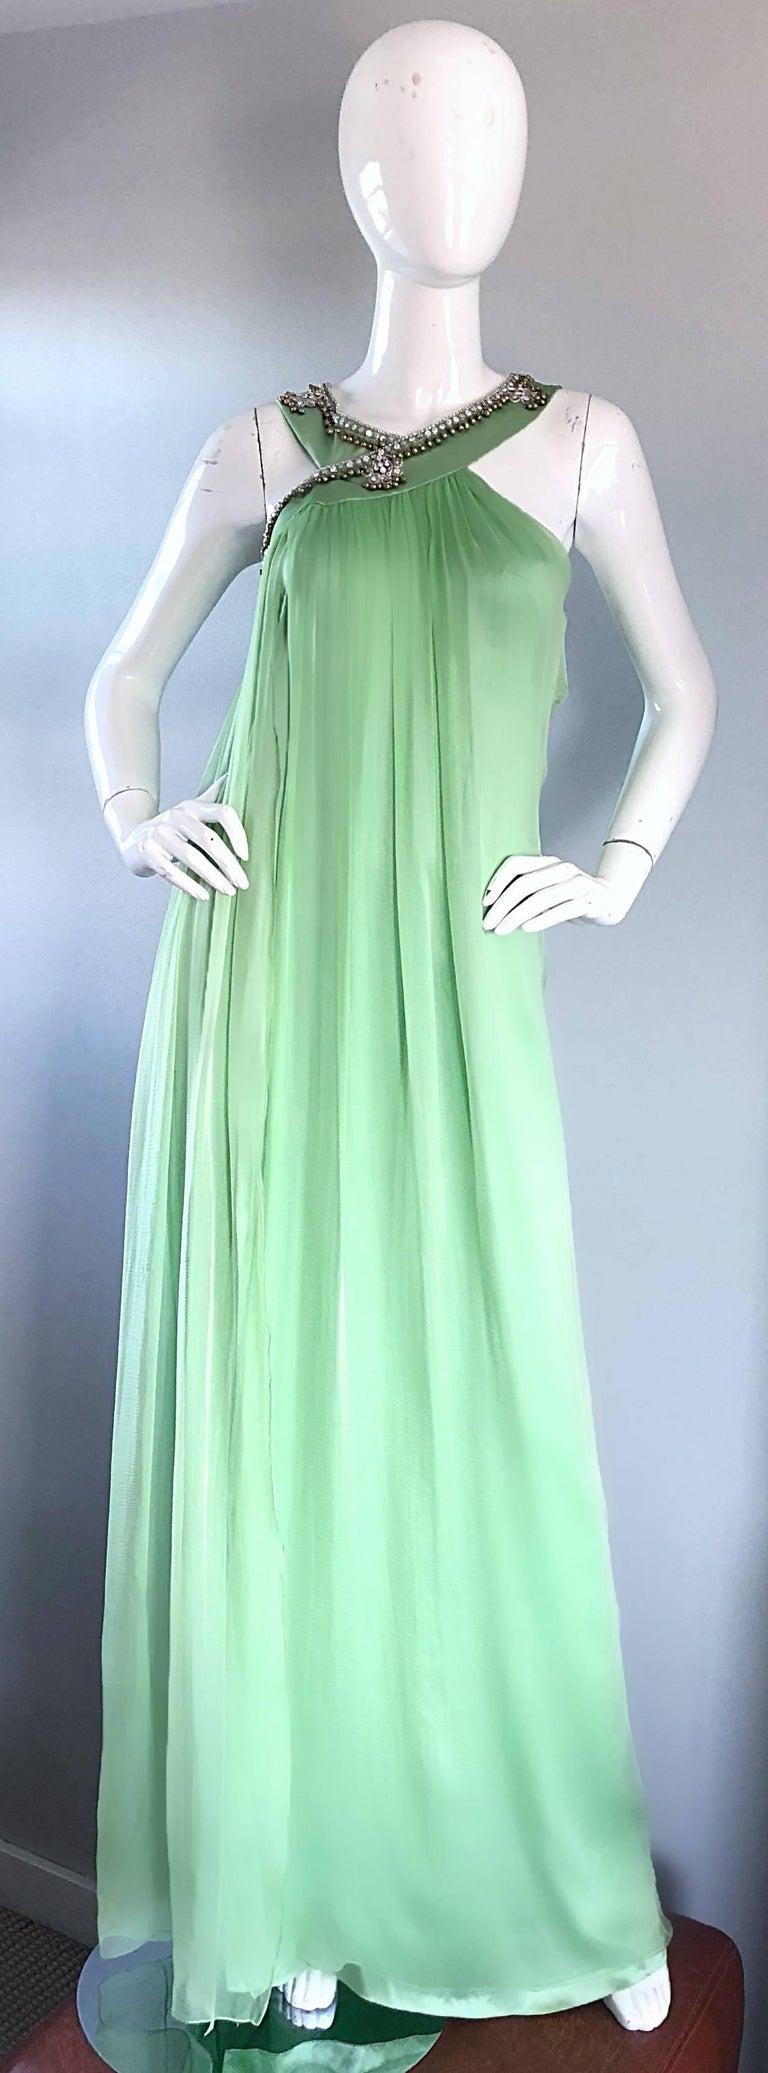 New Christian Dior John Galliano Light Green Silk Chiffon Grecian Gown, Sz 10   In New Never_worn Condition For Sale In San Francisco, CA